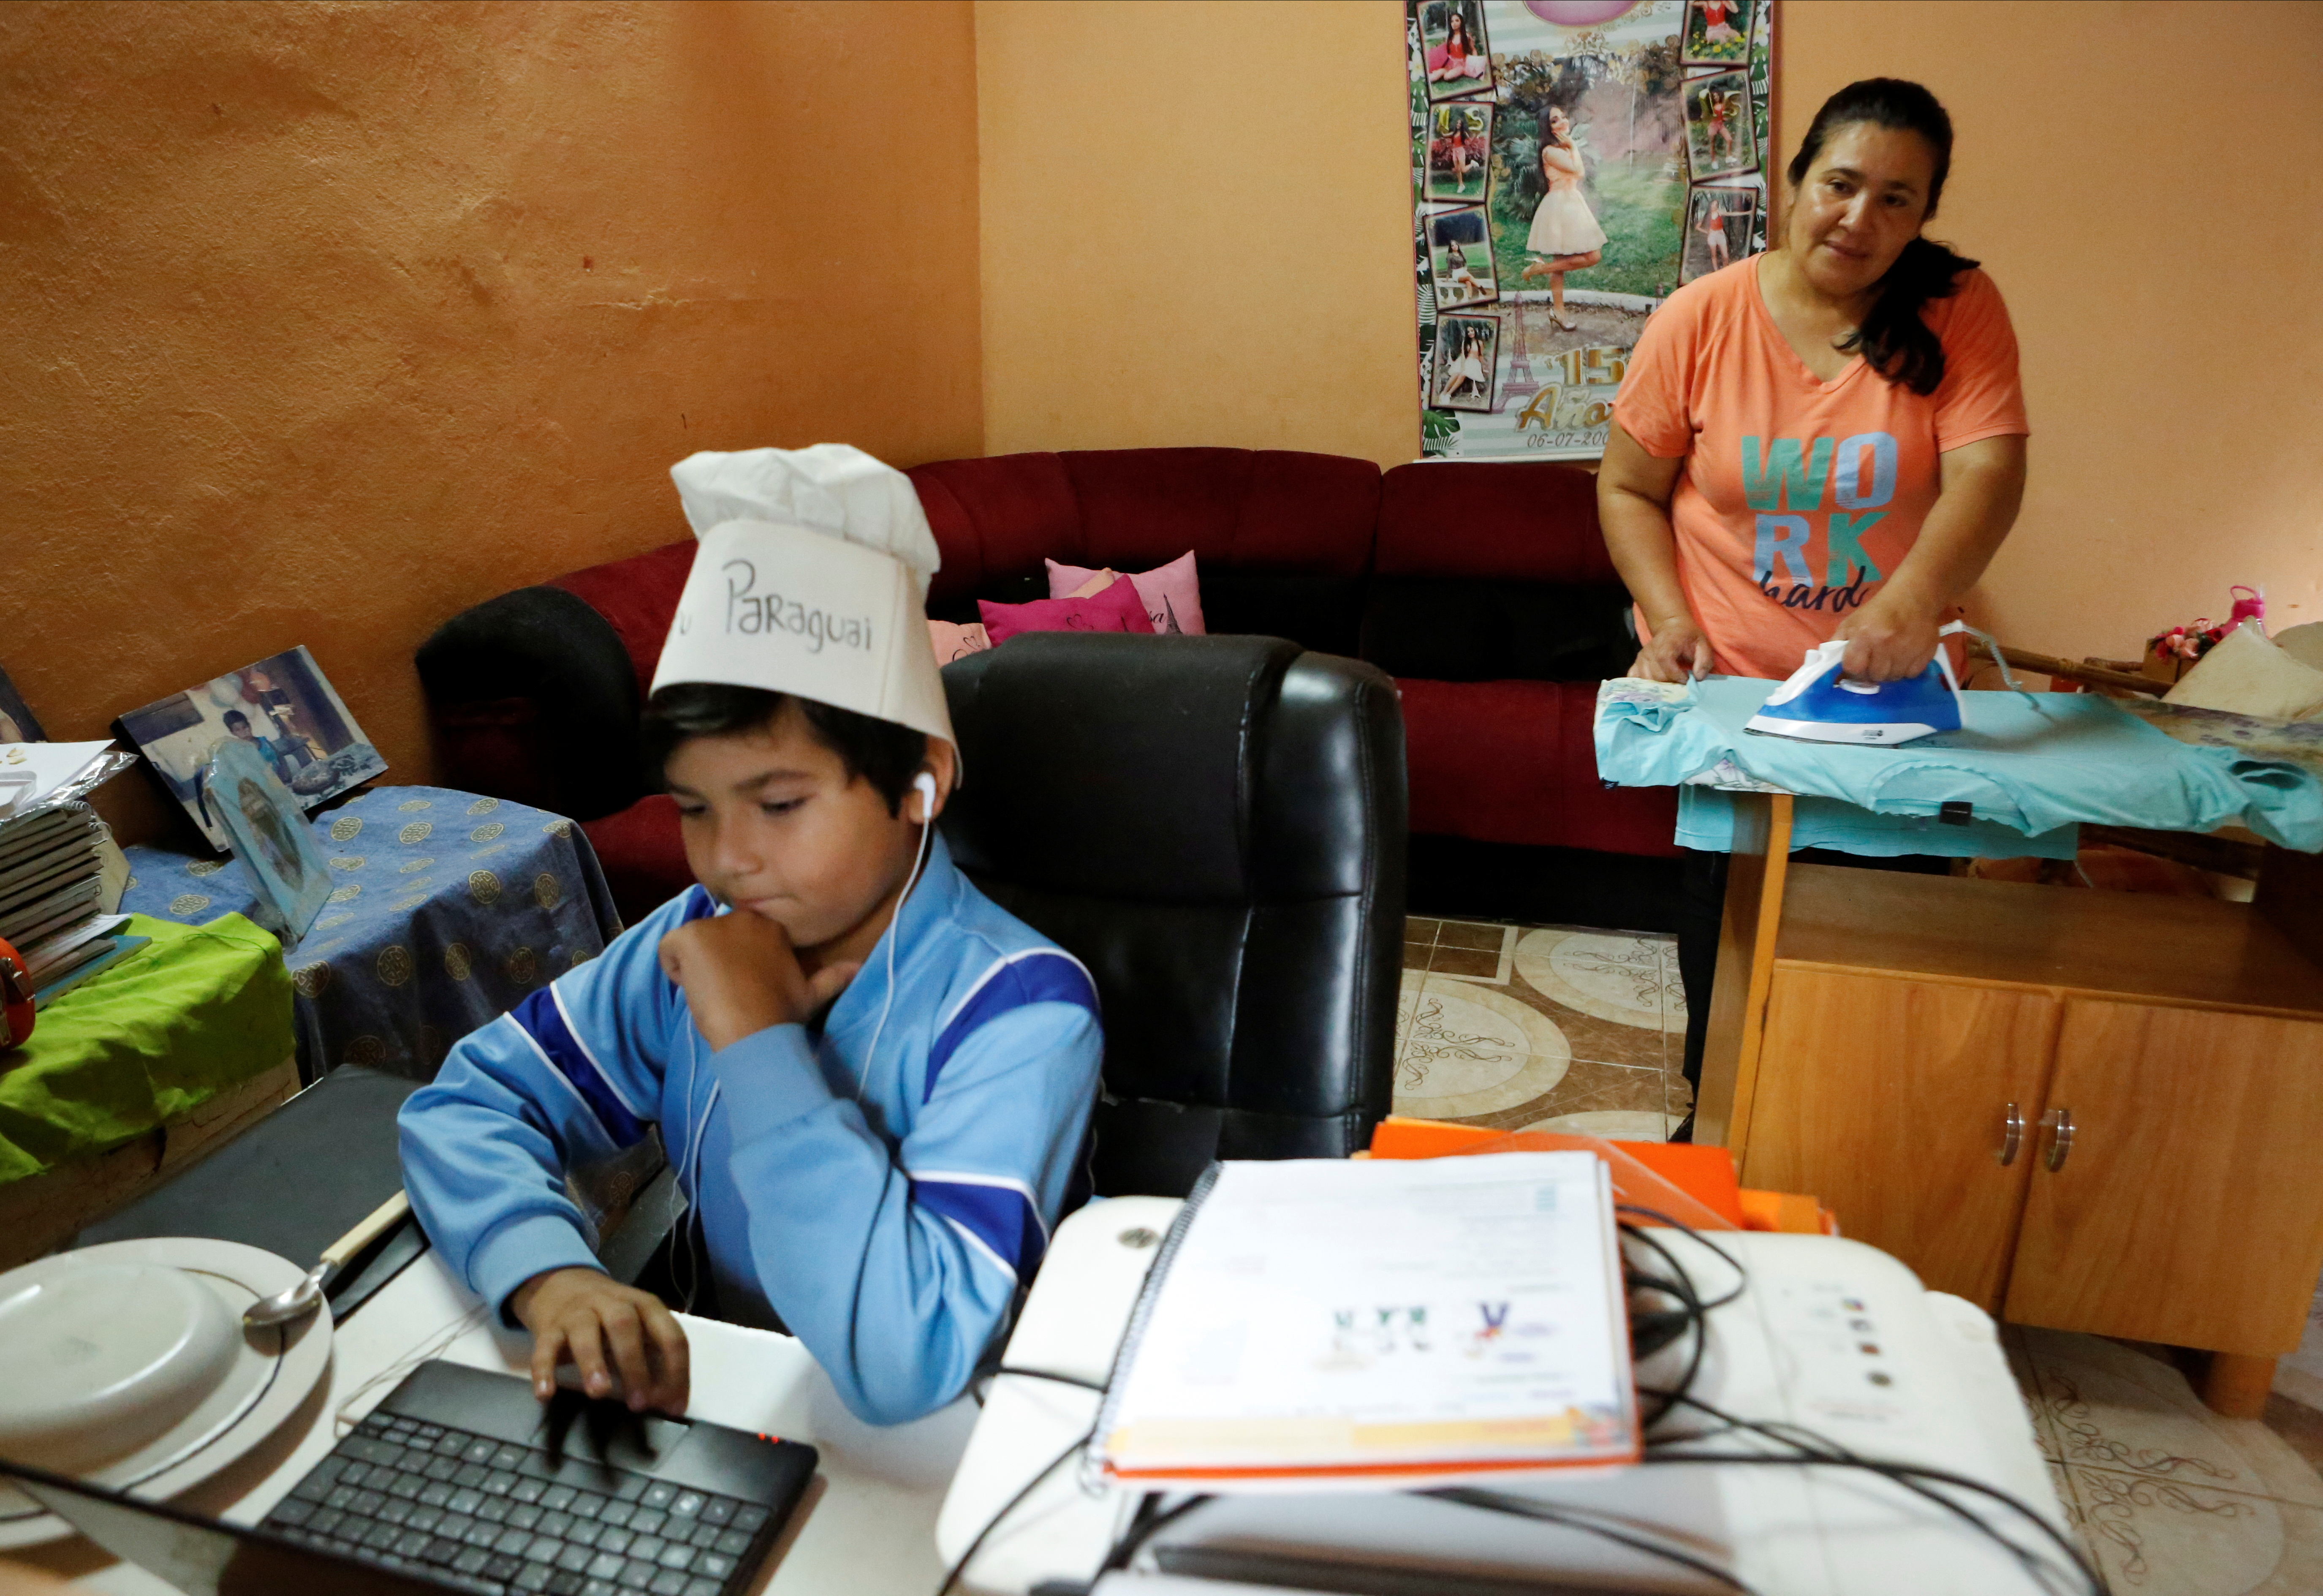 Rosa Maidana, 45, irons clothes as her son Luis Maidana, 9, attends the virtual school for distance learning, as the coronavirus disease (COVID-19) restrictions continue, in San Antonio, Paraguay September 3, 2021. Latin America's mothers are lagging behind in the pandemic of economic recovery, returning to the labor force more slowly than men, in a trend that experts say could set back female labor force participation for a decade across the region. Picture taken September 3, 2021. REUTERS/Cesar Olmedo